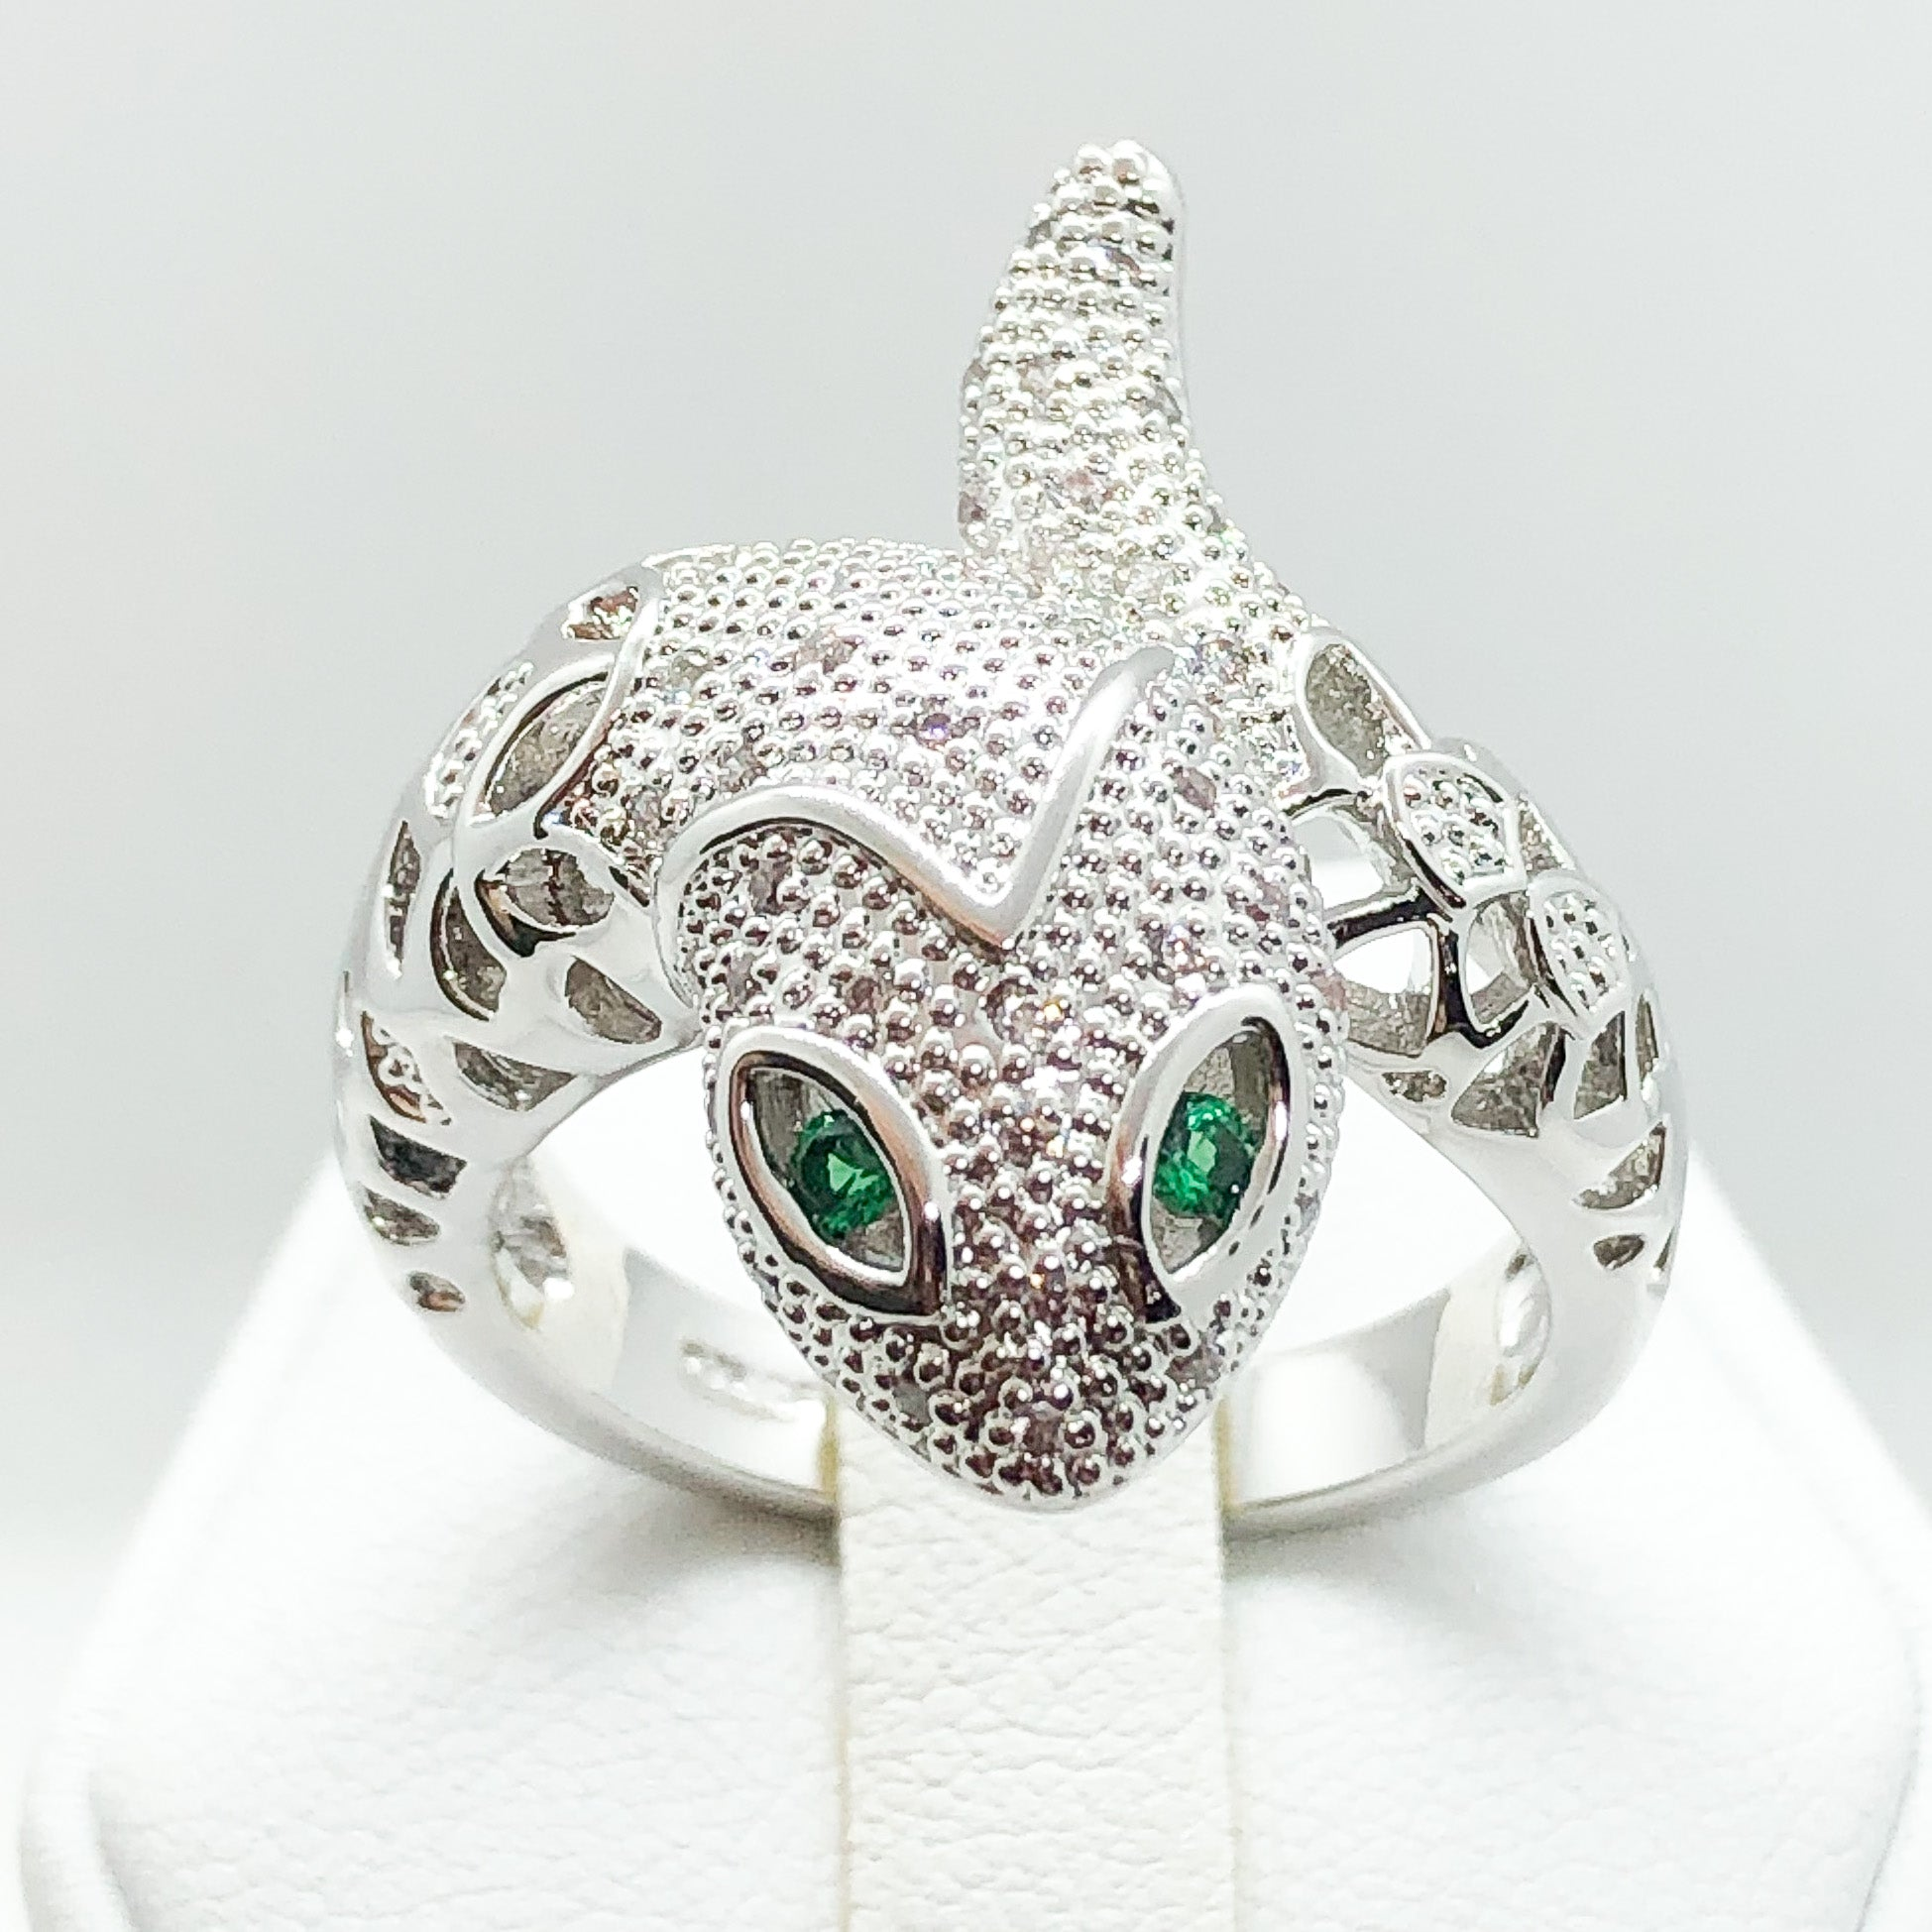 ID:R7132 Women Jewelry 18K White Gold GF Snake Design Ring With Emerald Eyes and Clear CZ Accent